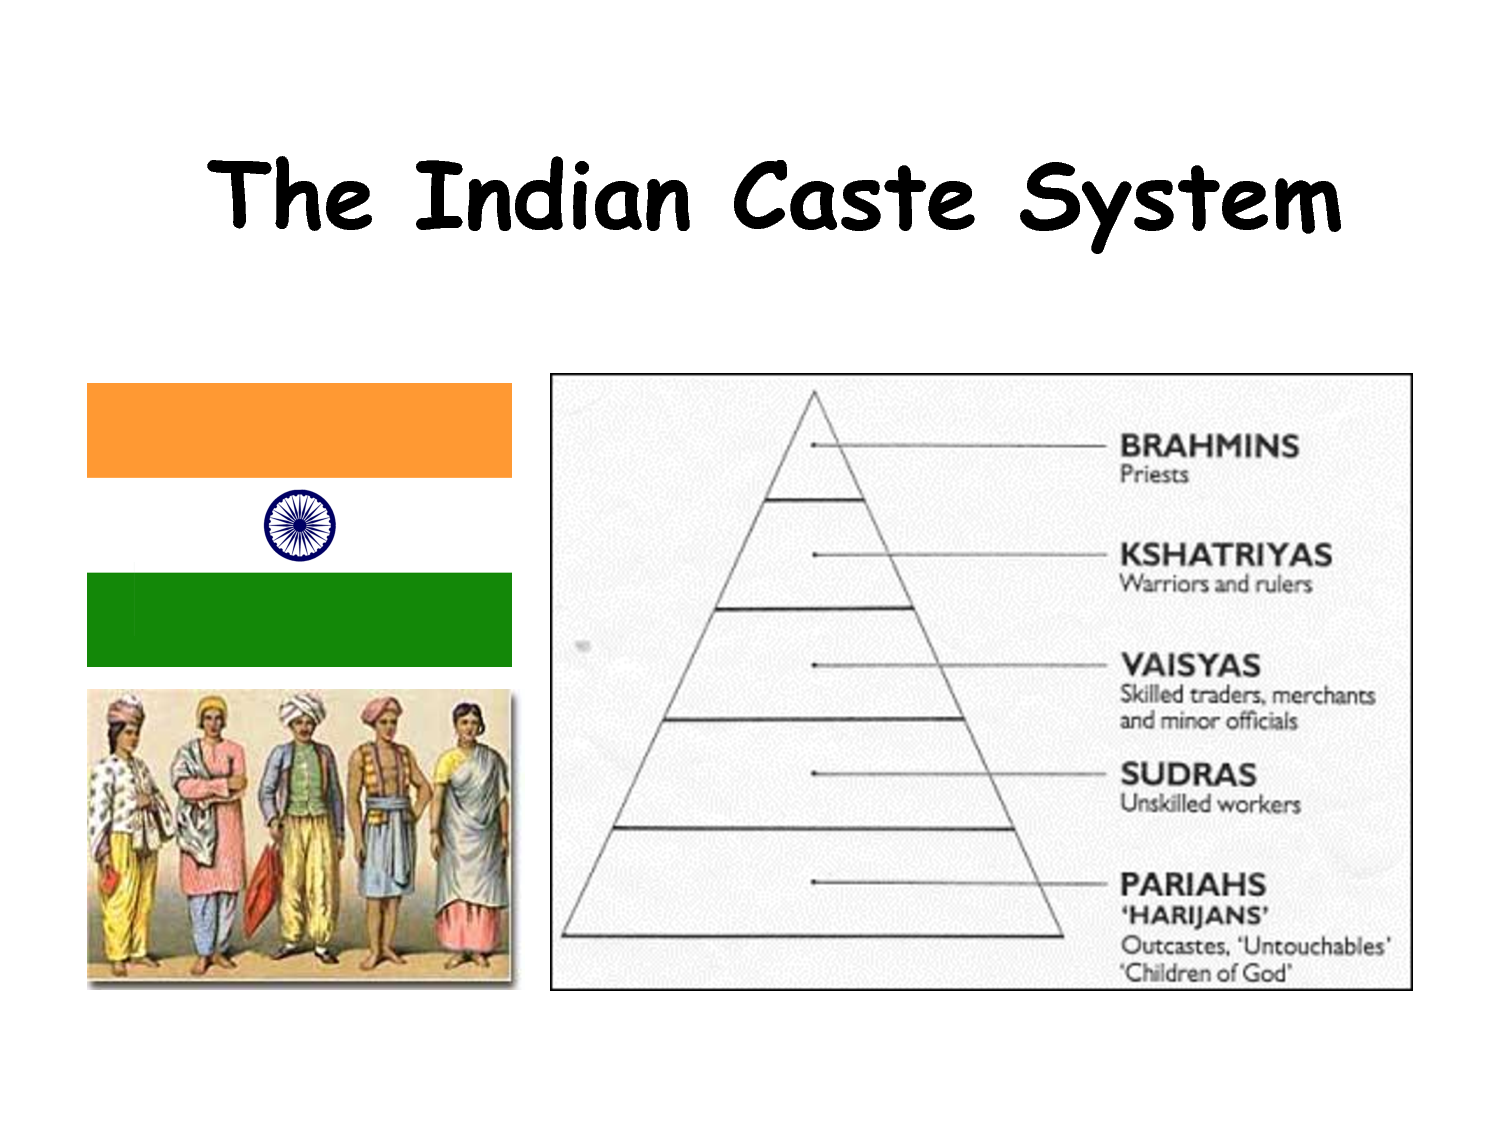 The Indian Caste System explained in a simple way